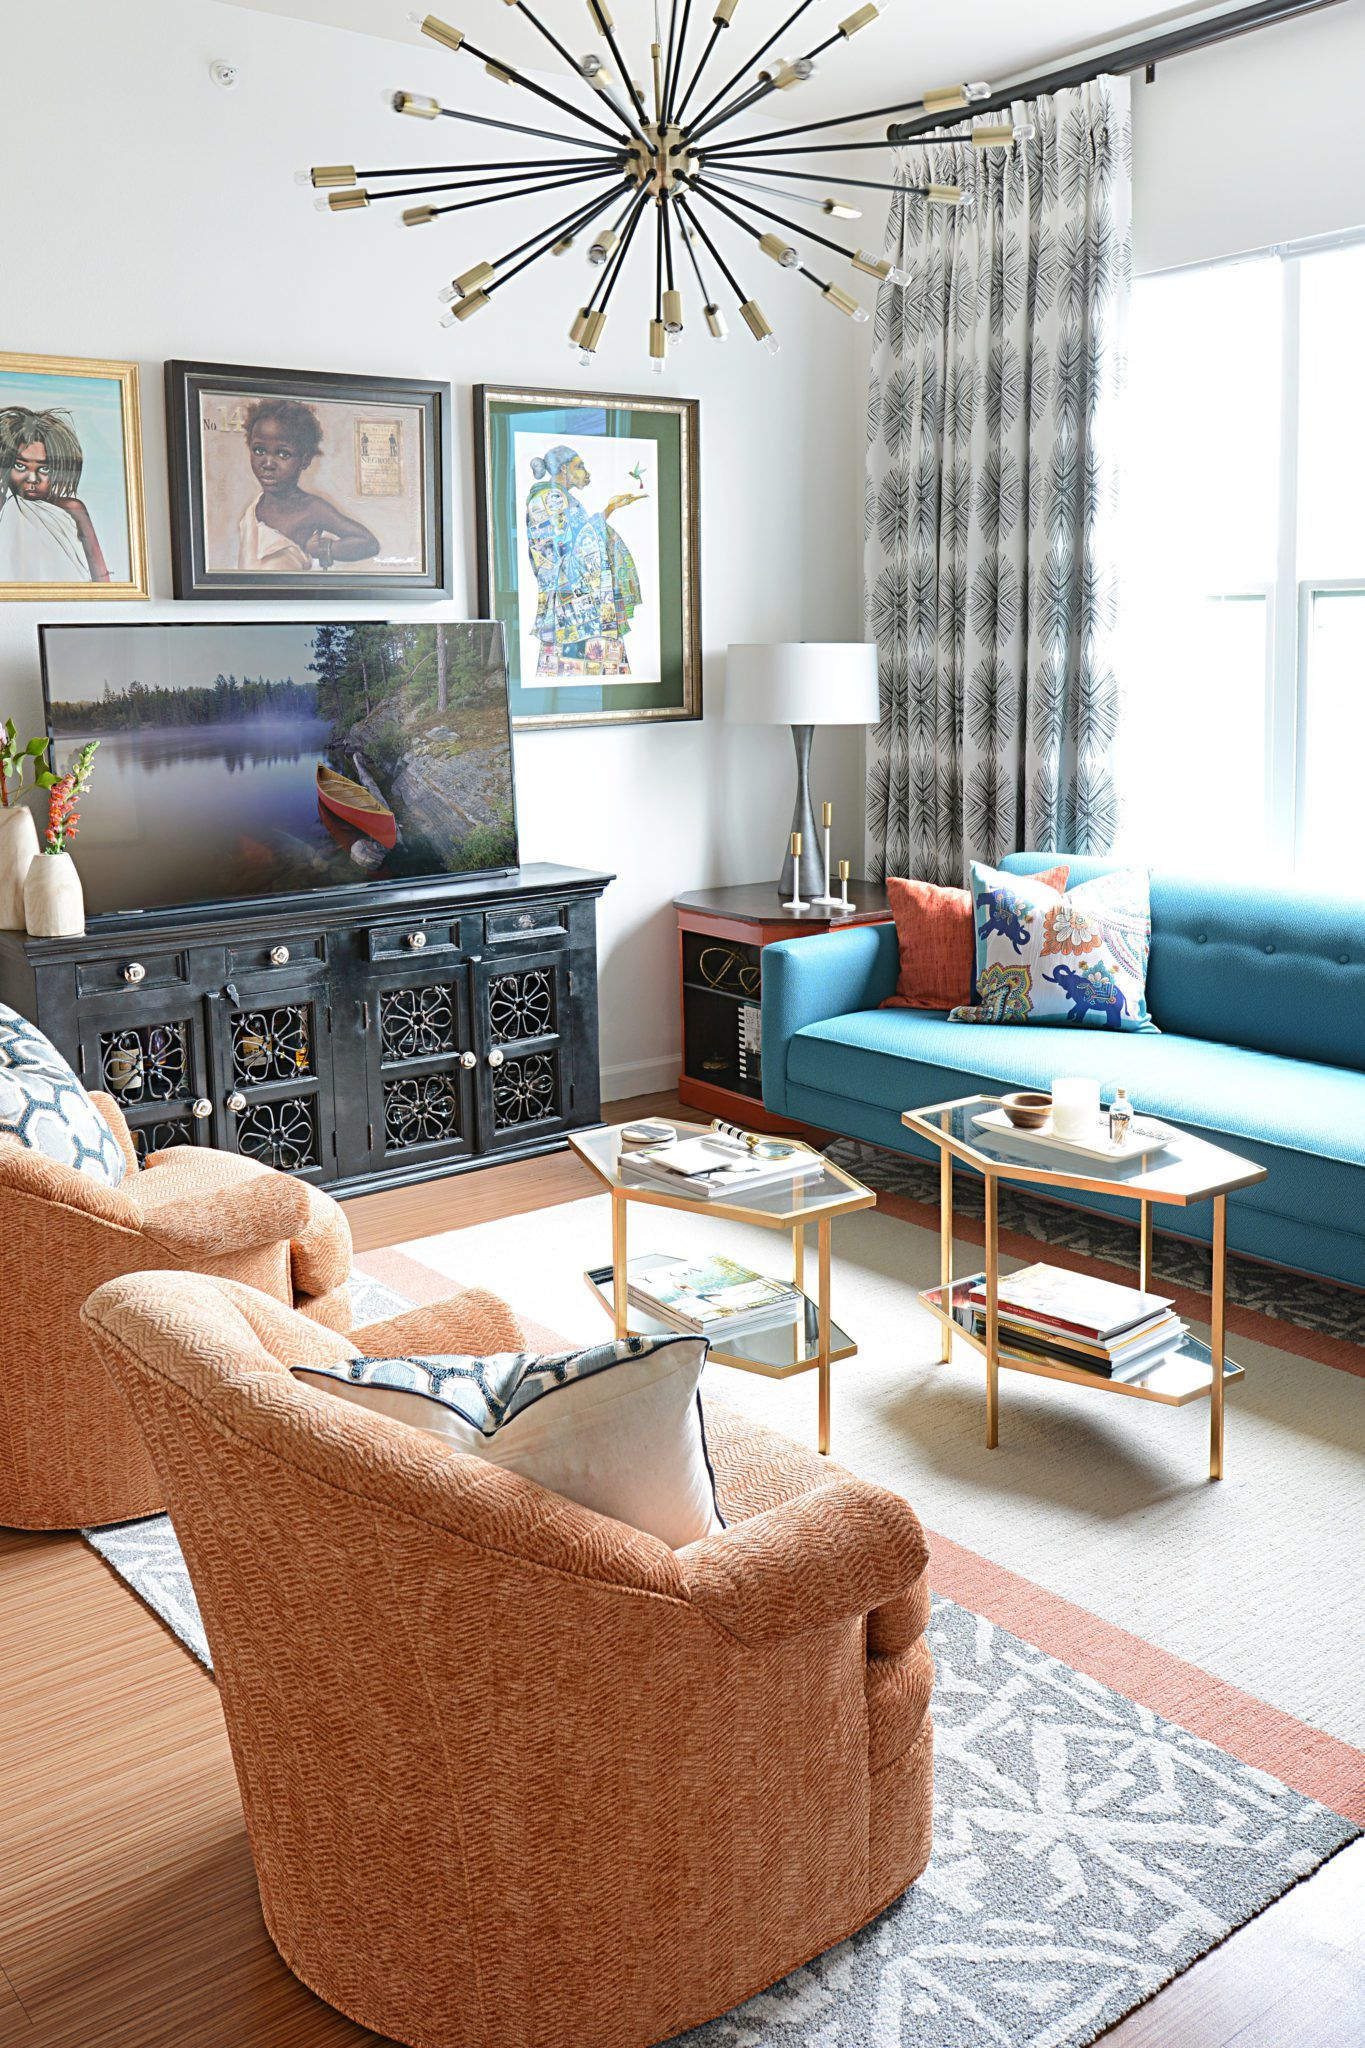 93cp3sdun79ogwsnz6k6nwkg32fed5vvxzrvcde83rj1 595x893 5 Tips For Decorating  A Small Space With Southern Style